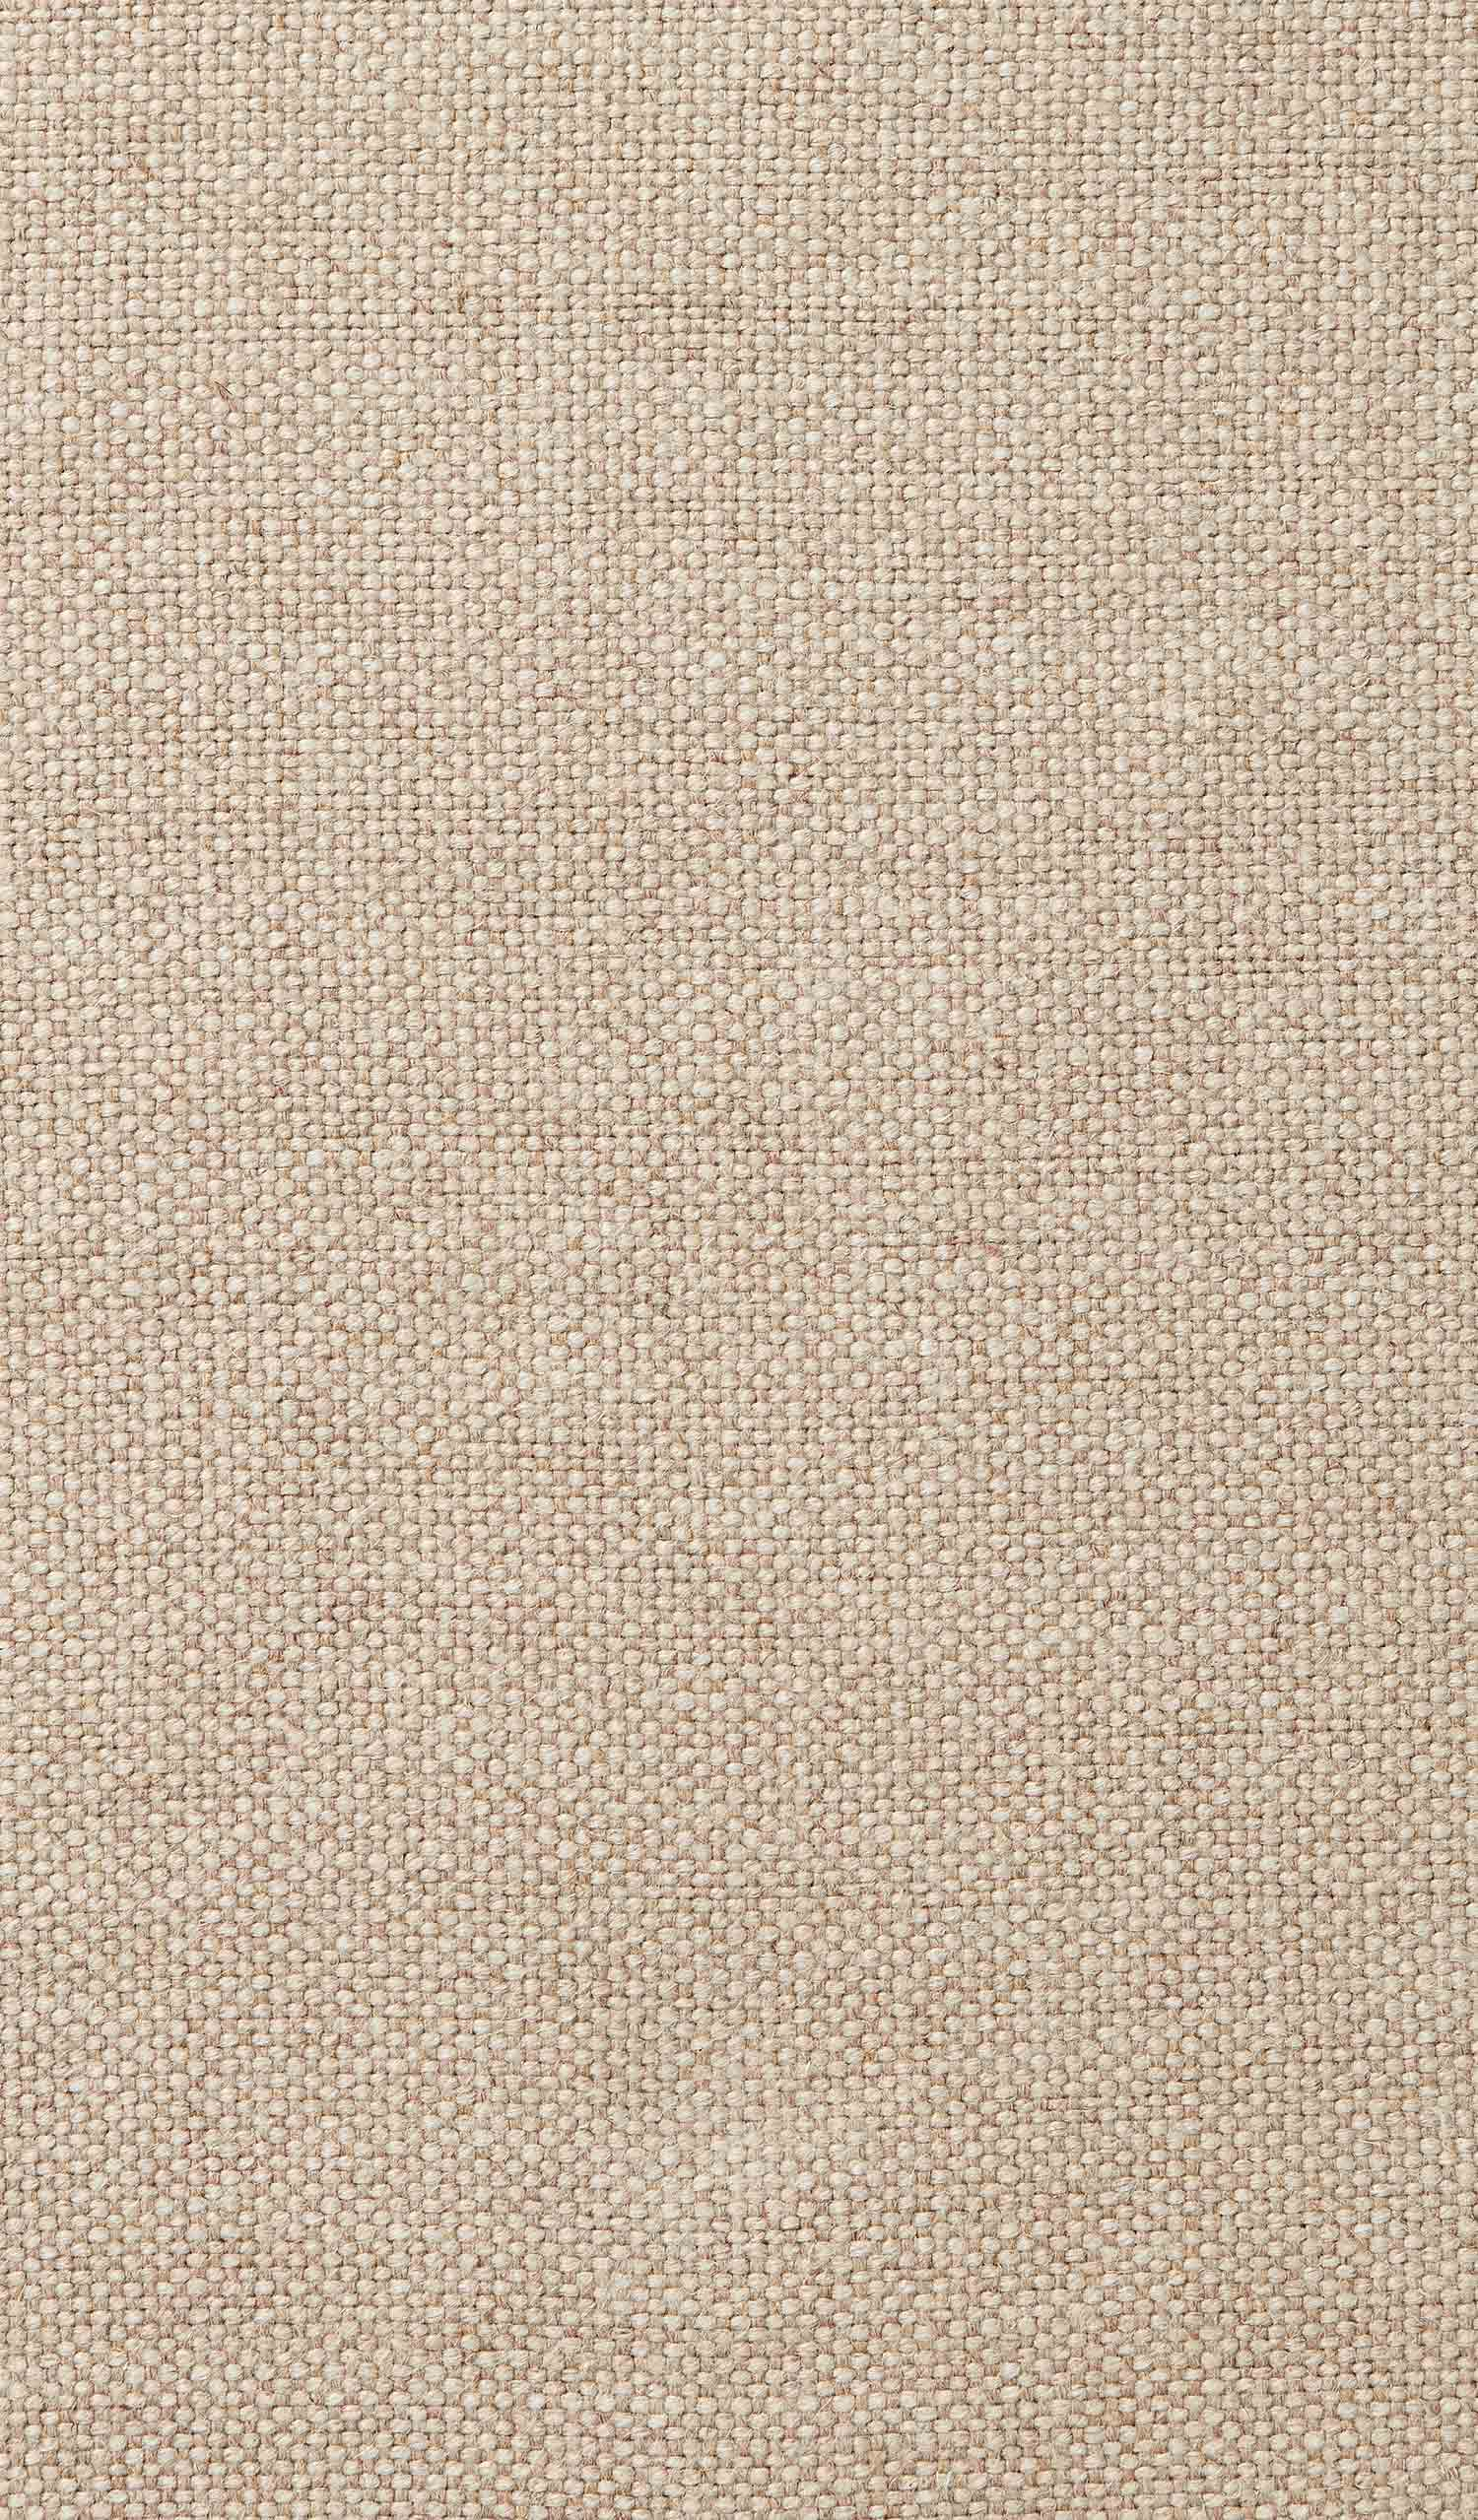 swatch of linen rustic flax